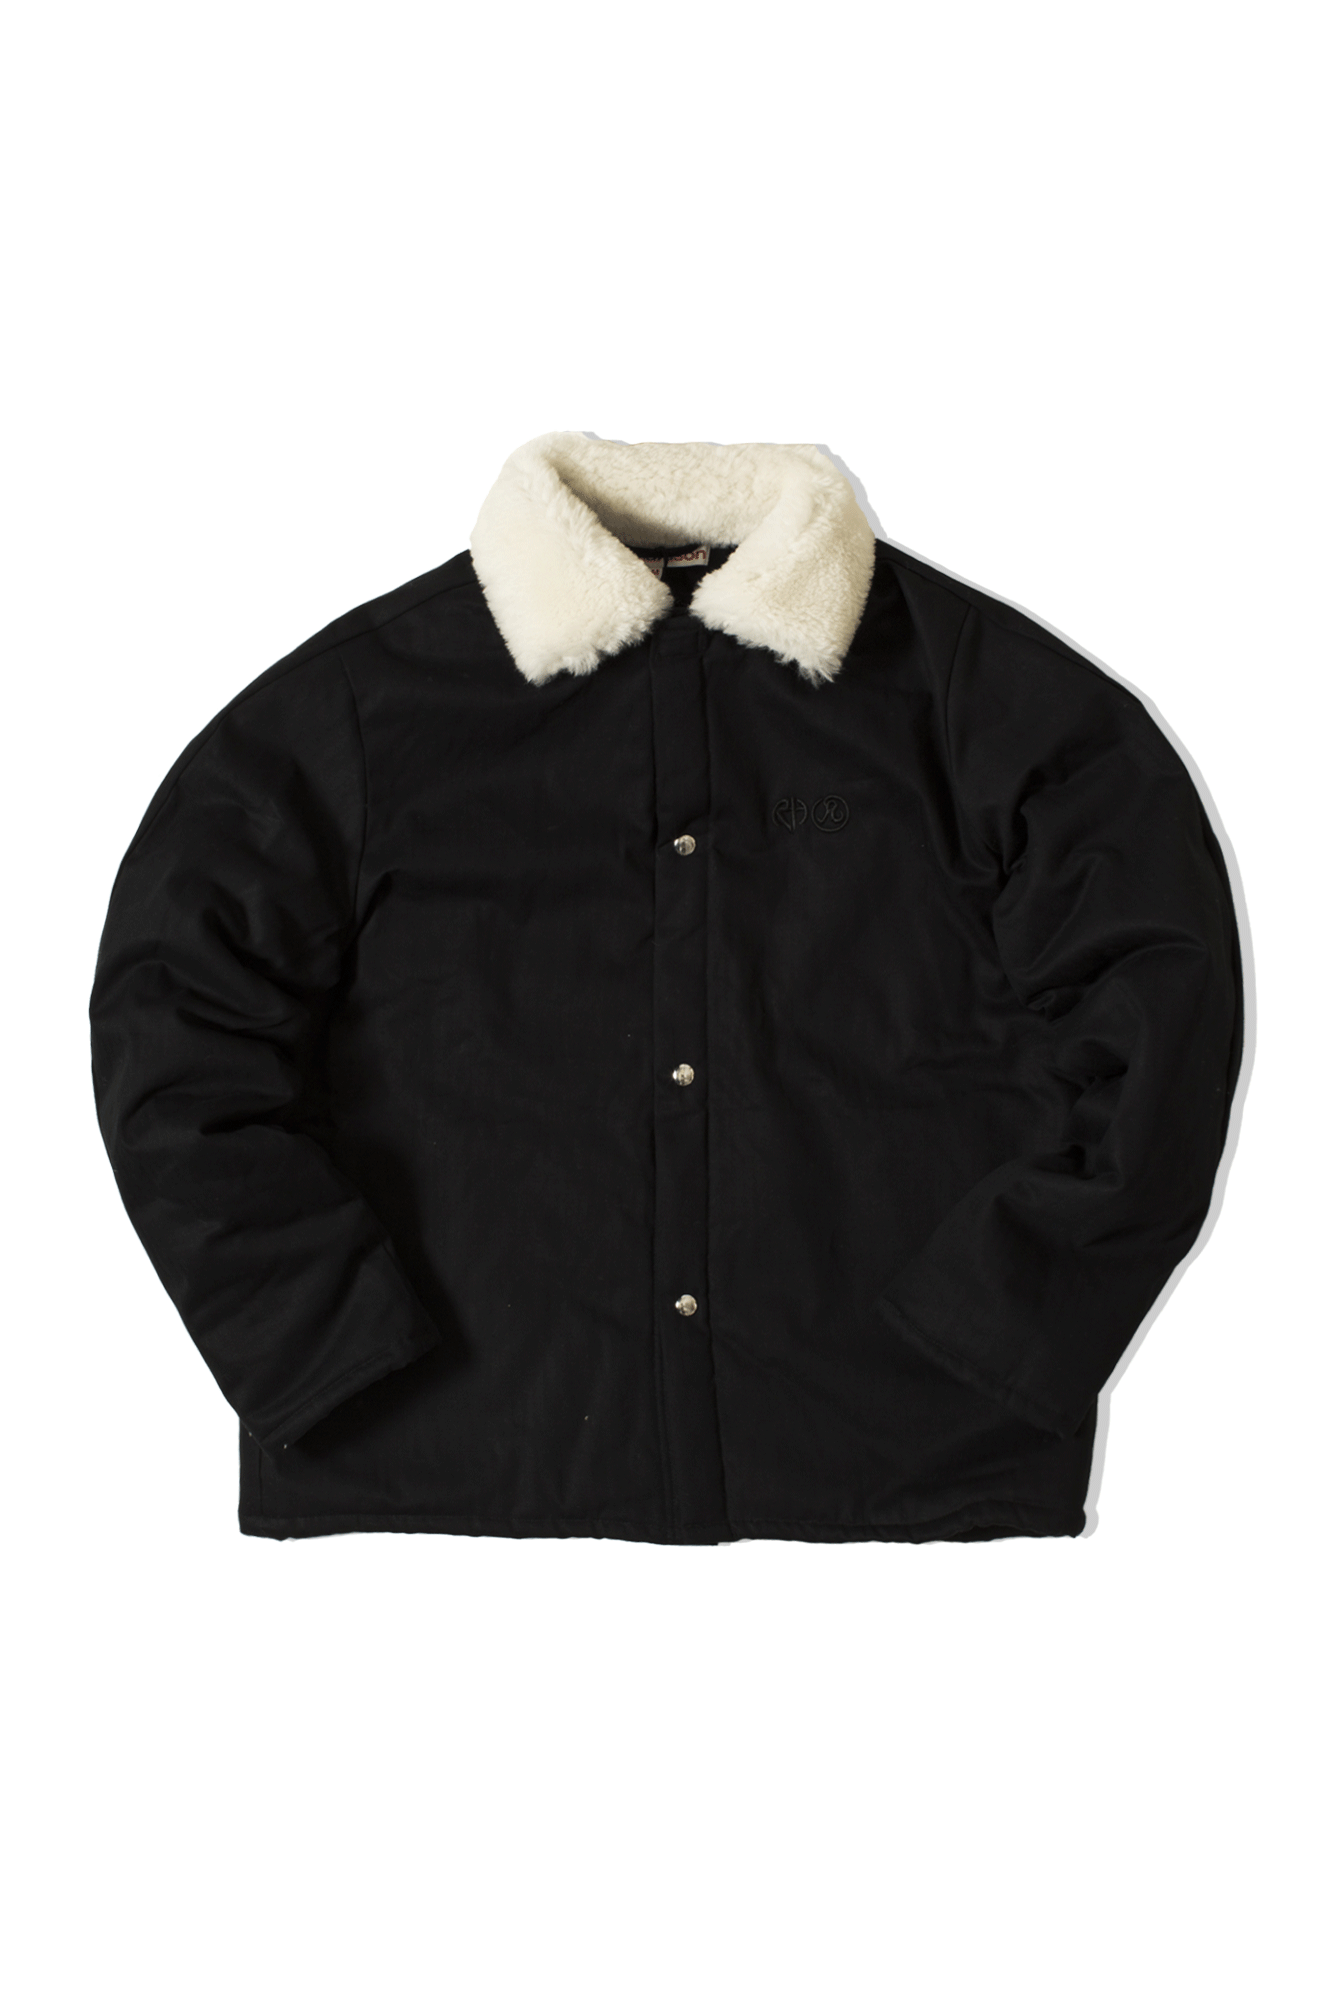 Sherpa Welder's Jacket Nero